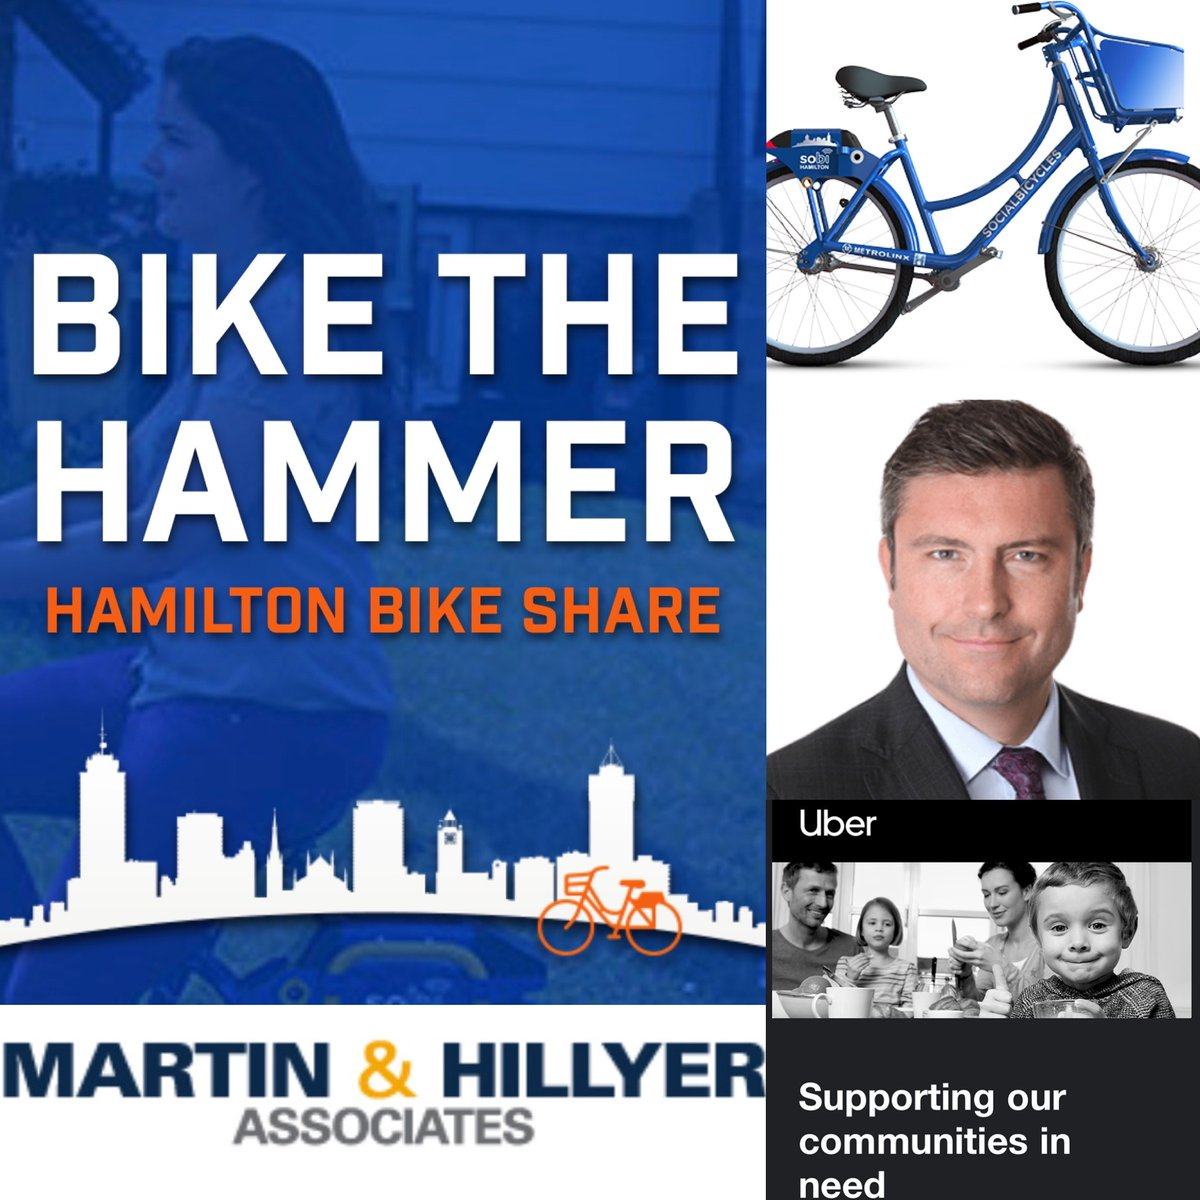 Putting my  where my mouth is, pledging $5,000 to #hamiltonbikeshare. #bikes empower, promote #mentalhealth and are #fun! support #saveoursobi however you can. WE CAN DO THIS. WE DESERVE THIS, #HAMONT. #cycling #personalinjurylawyer @burlingtonlaw #employmentlawyer #burlonpic.twitter.com/4O27tZP27U